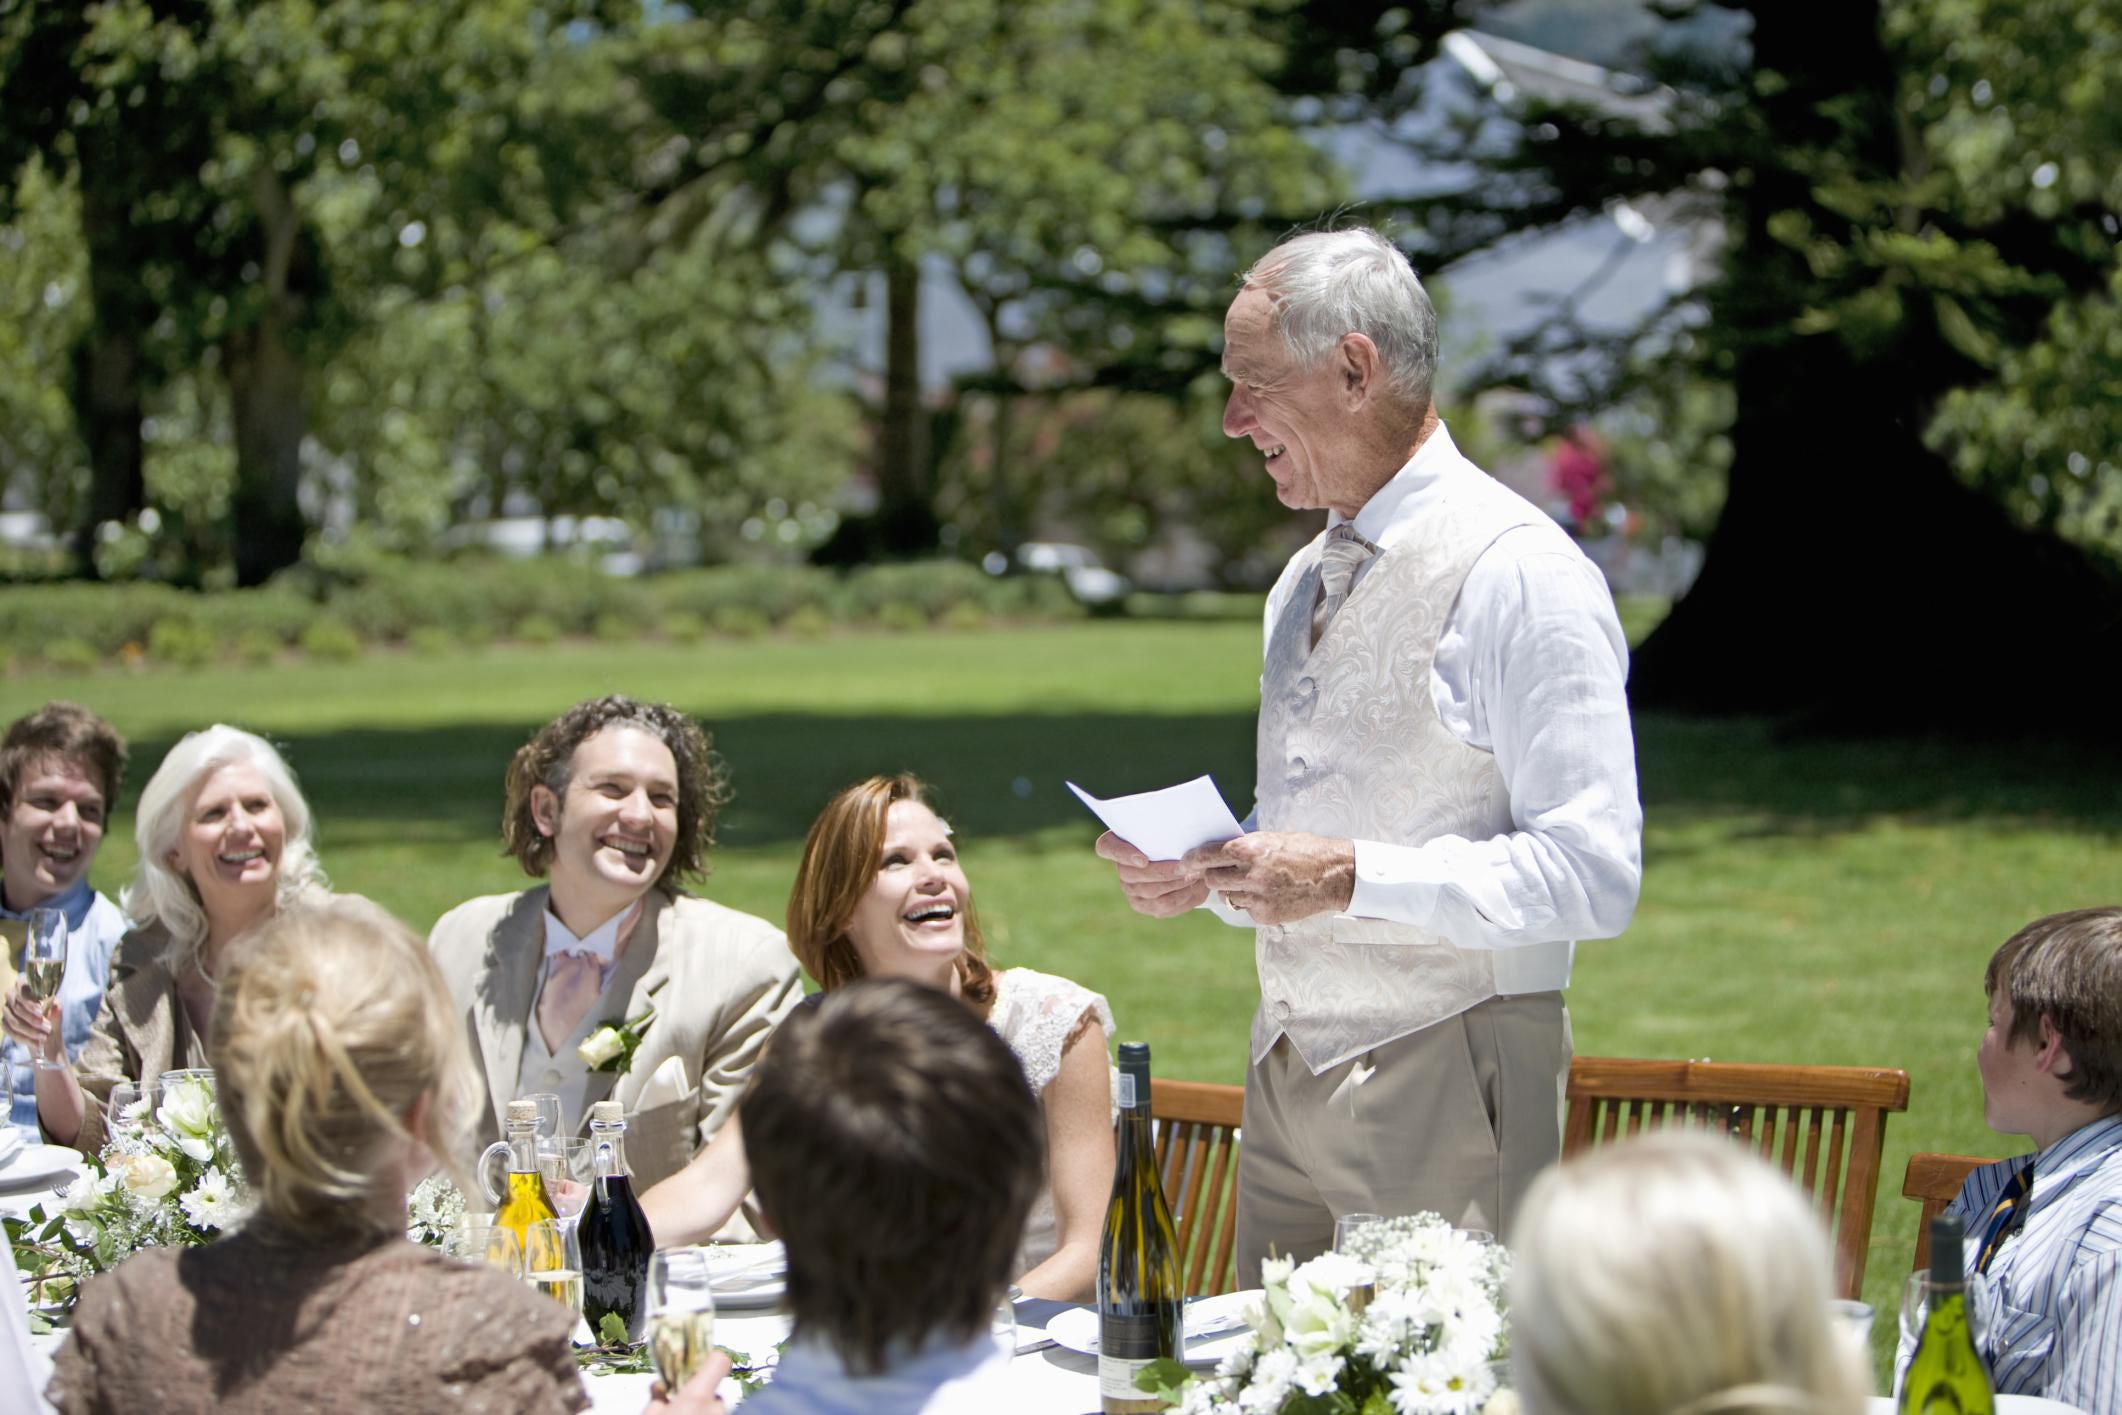 Grooms Speech To Bride Examples: Father Of The Bride Wedding Speeches